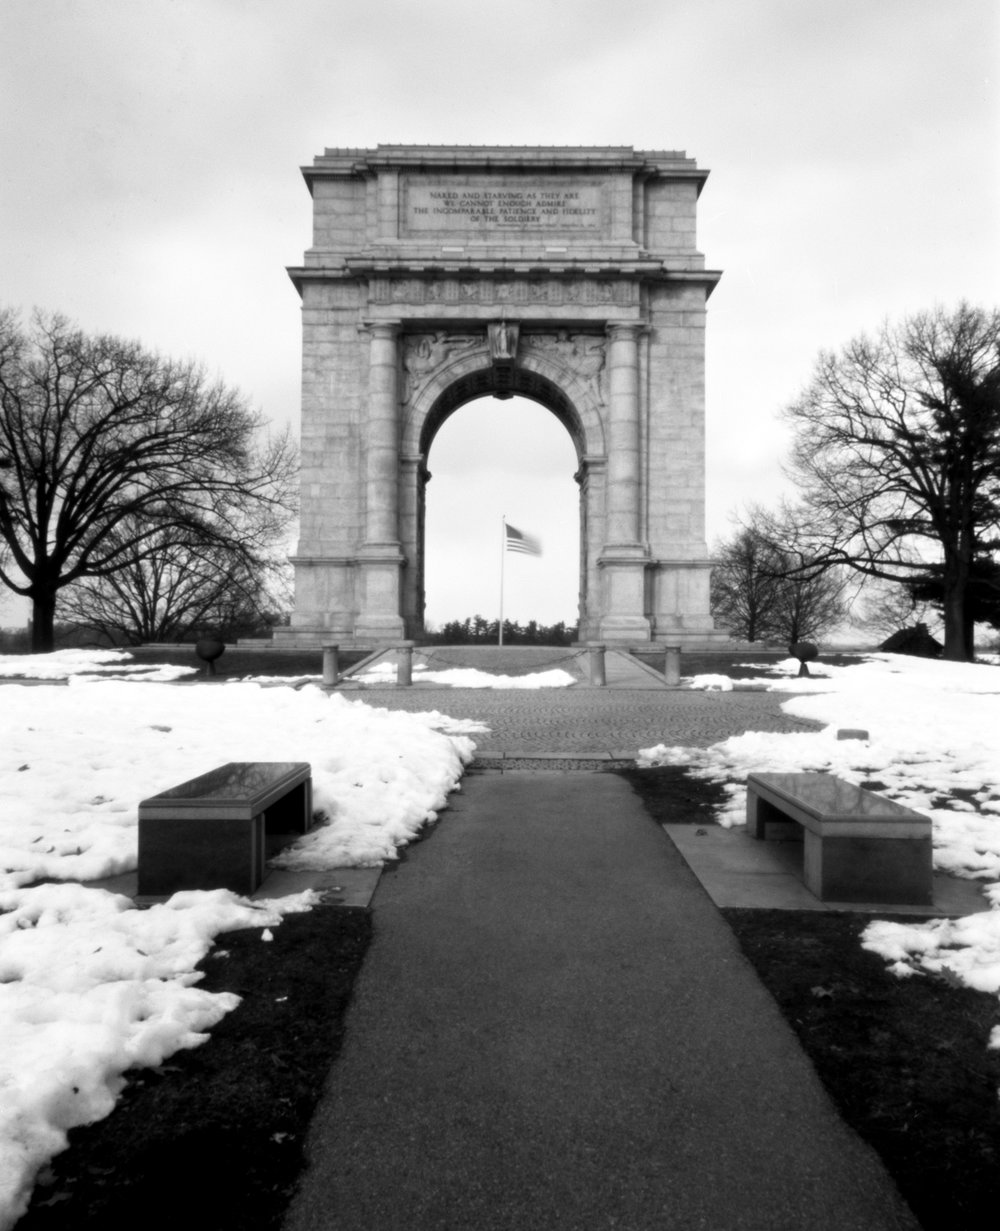 Valley Forge Memorial Arch.  Valley Forge, Pennsylvania.  Rob Kauzlarich built 90mm 4x5.